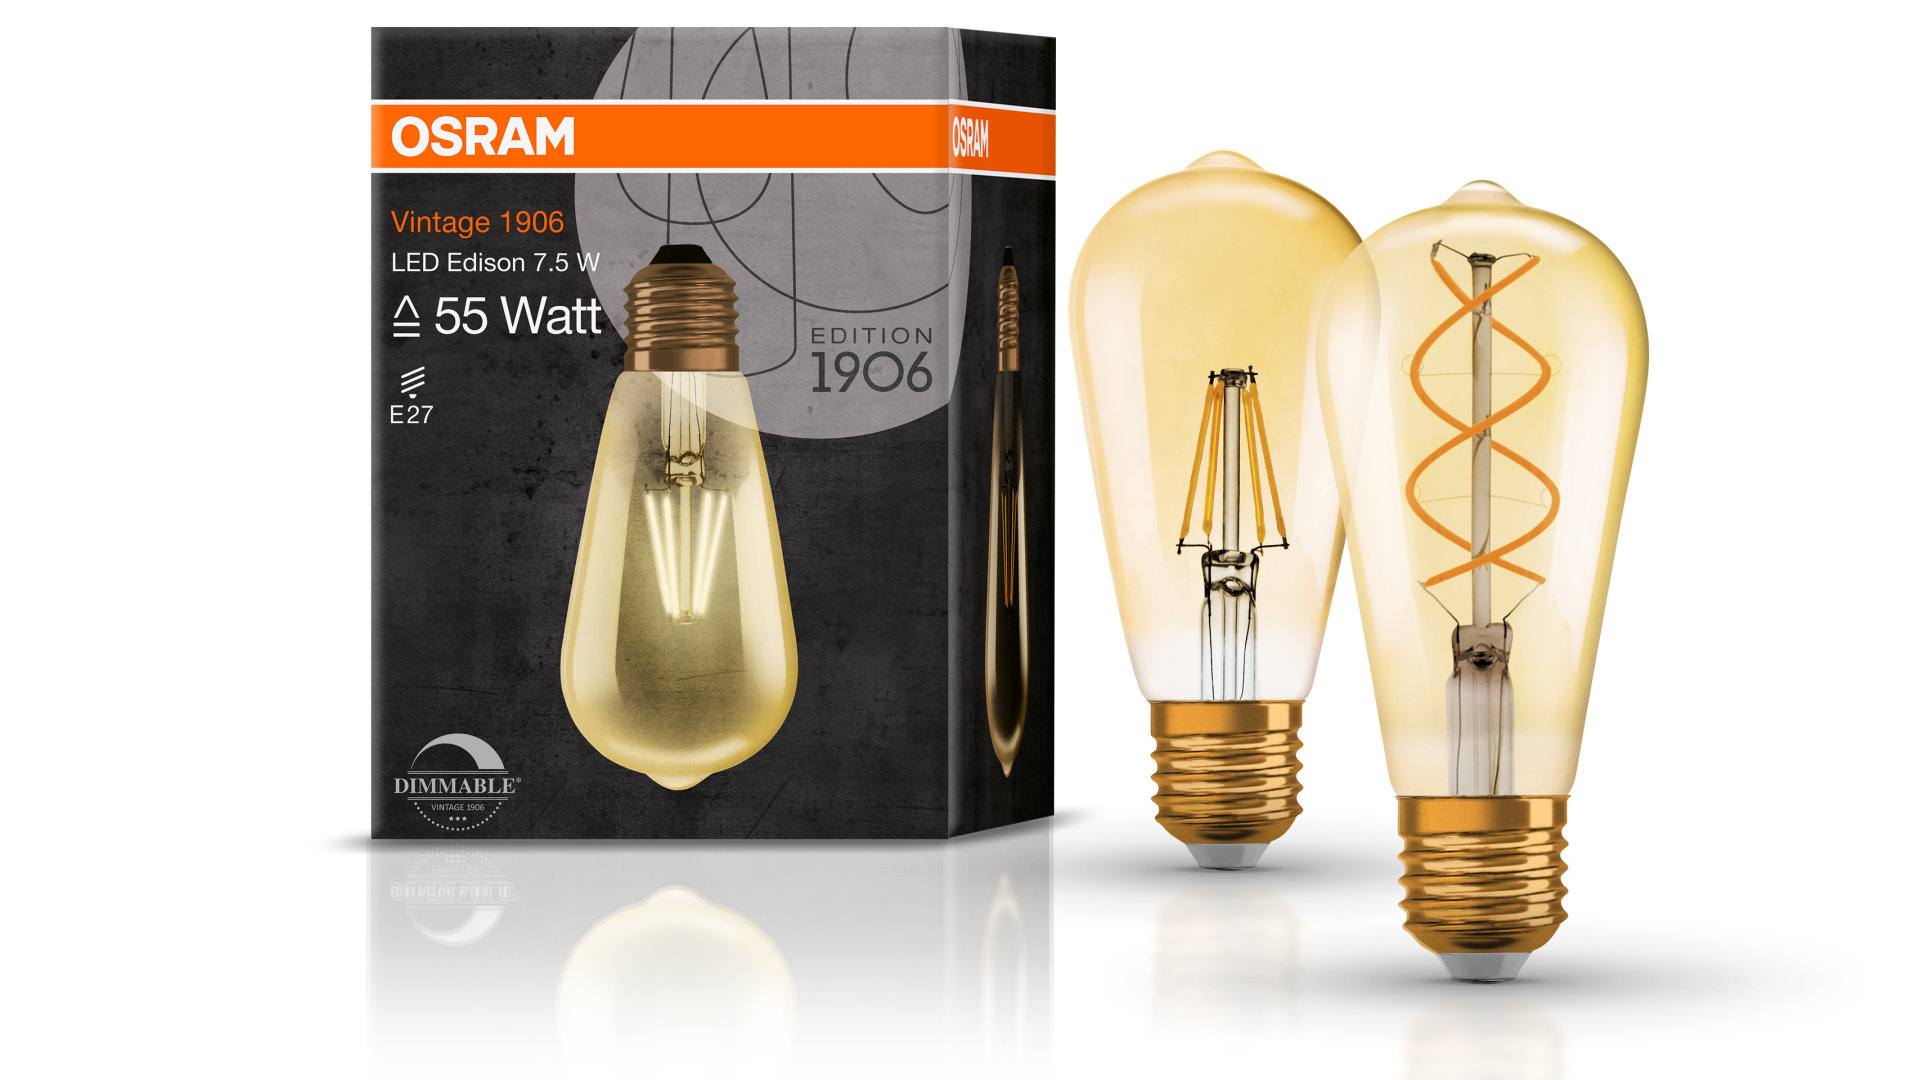 Vintage Edition 1906 LED Edison